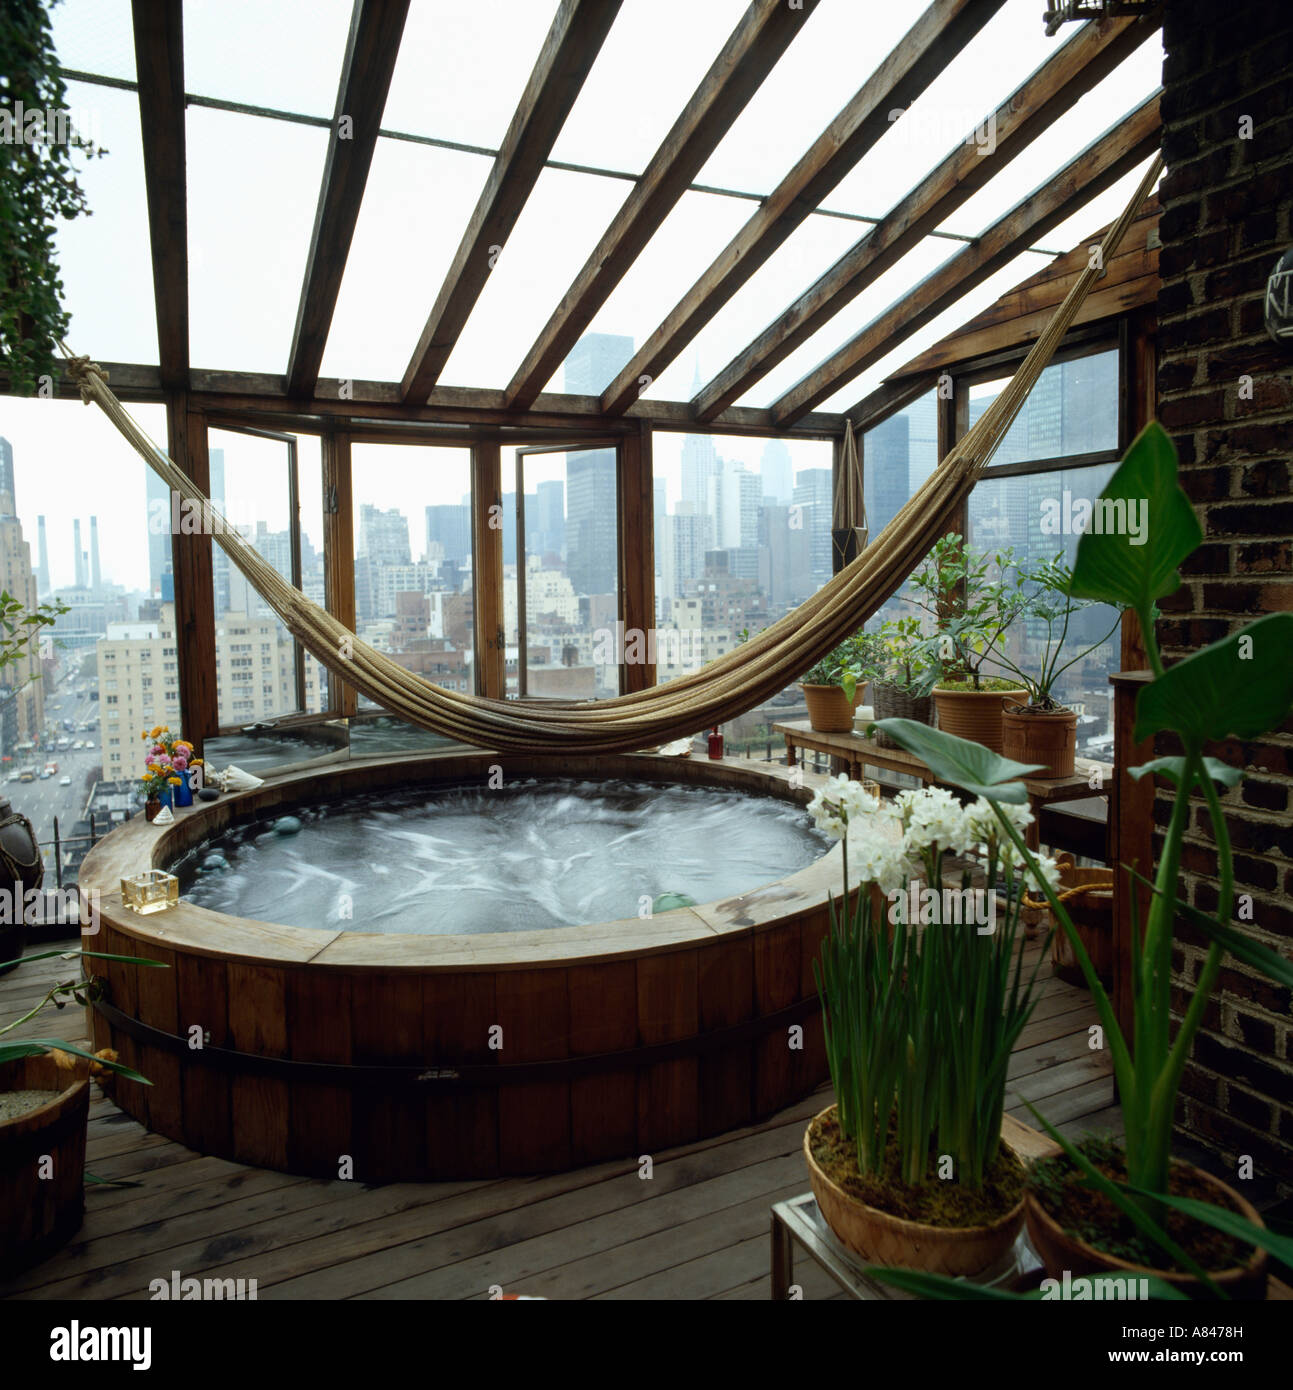 Hot Tub Hammock >> Hammock Above Hot Tub In Conservatory Extension With View Of New